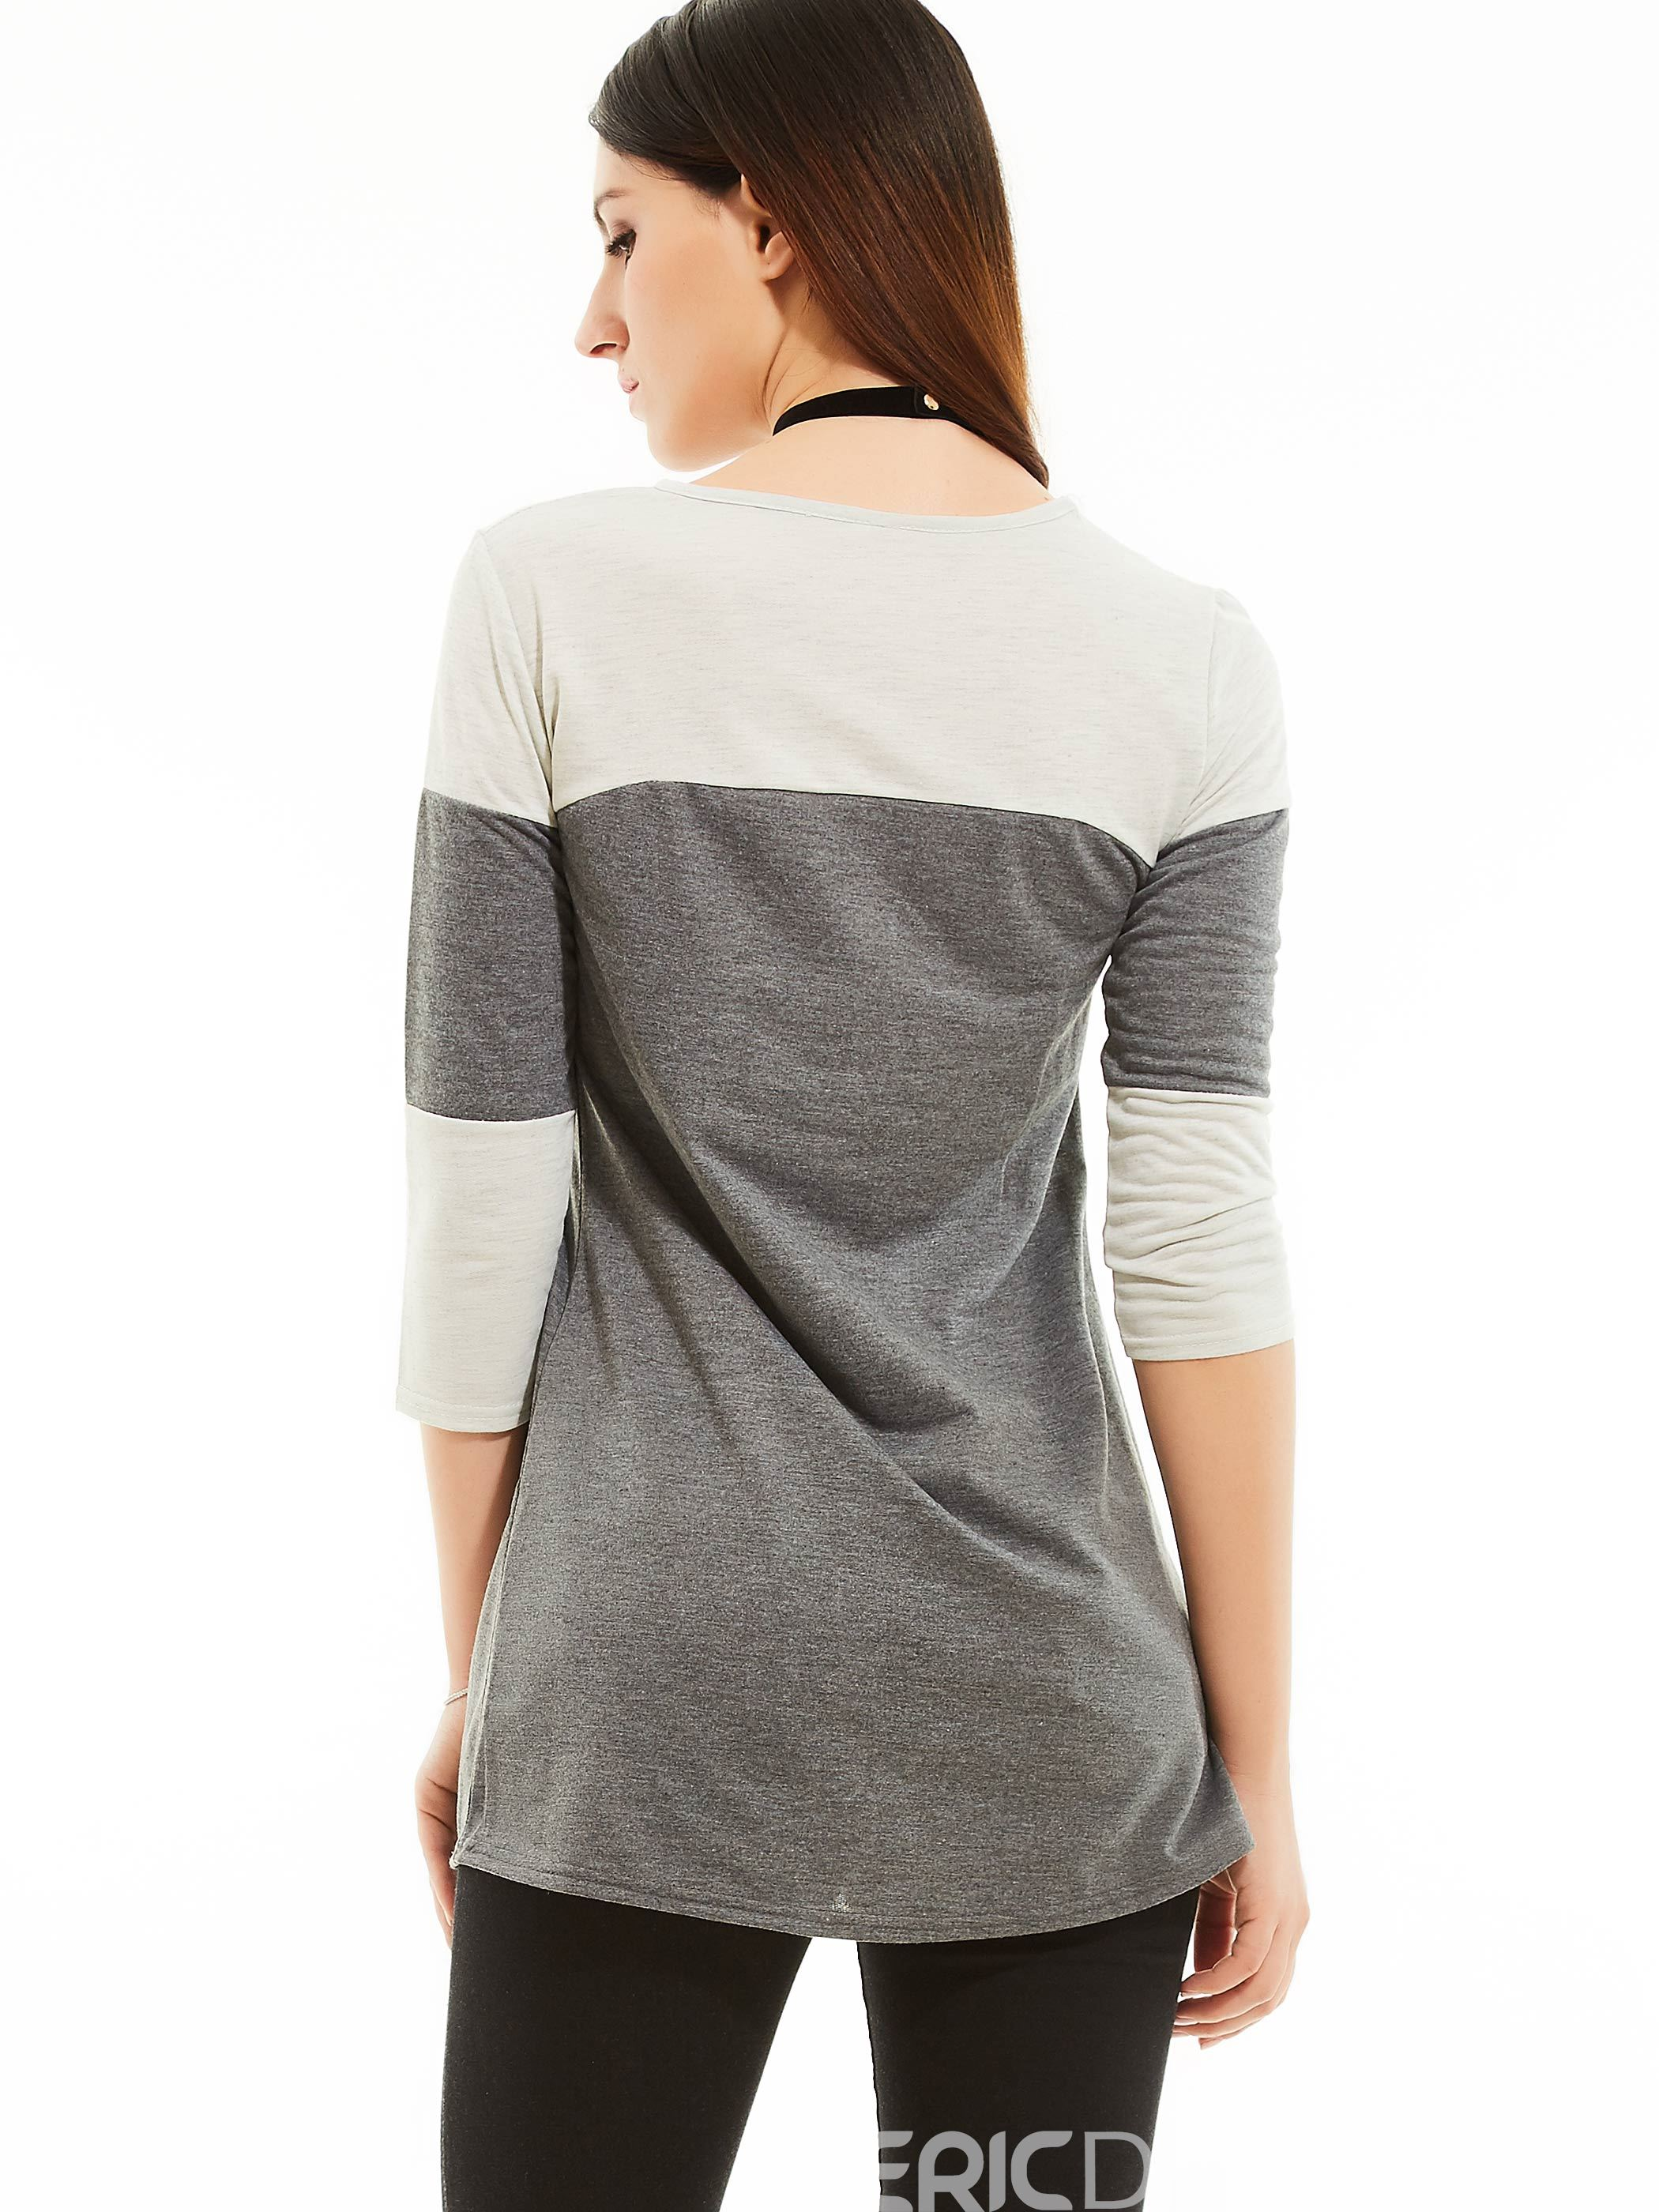 Ericdress Round Neck Color Block T-shirt